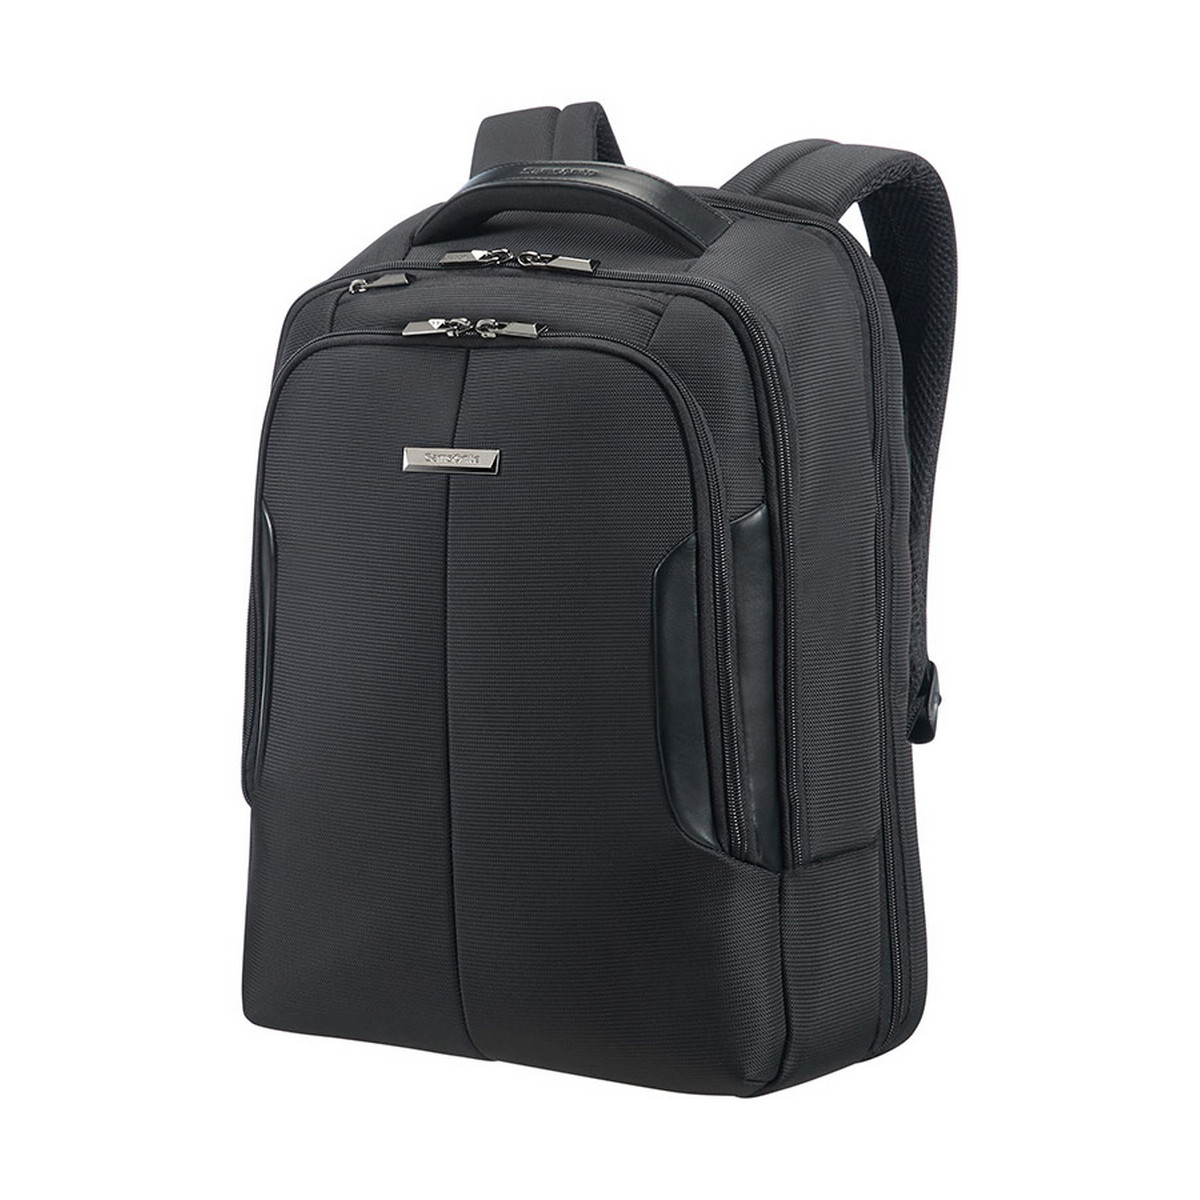 LAPTOP BACKPACK 14.1 XBR - SAMSONITE